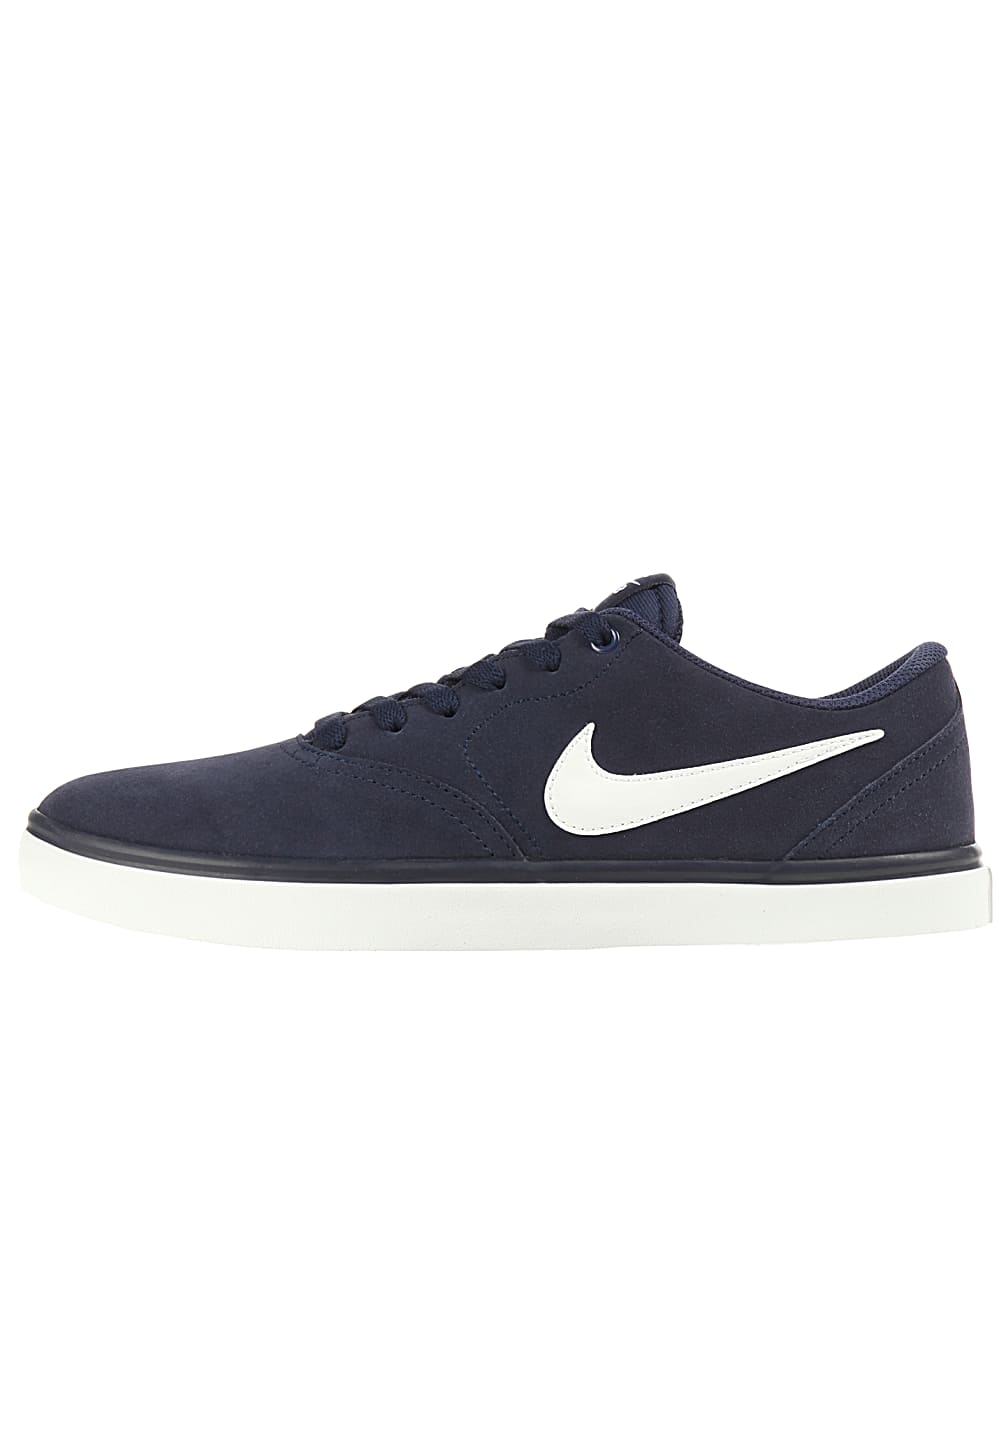 various colors for whole family later NIKE SB Check Solar - Sneakers for Men - Blue